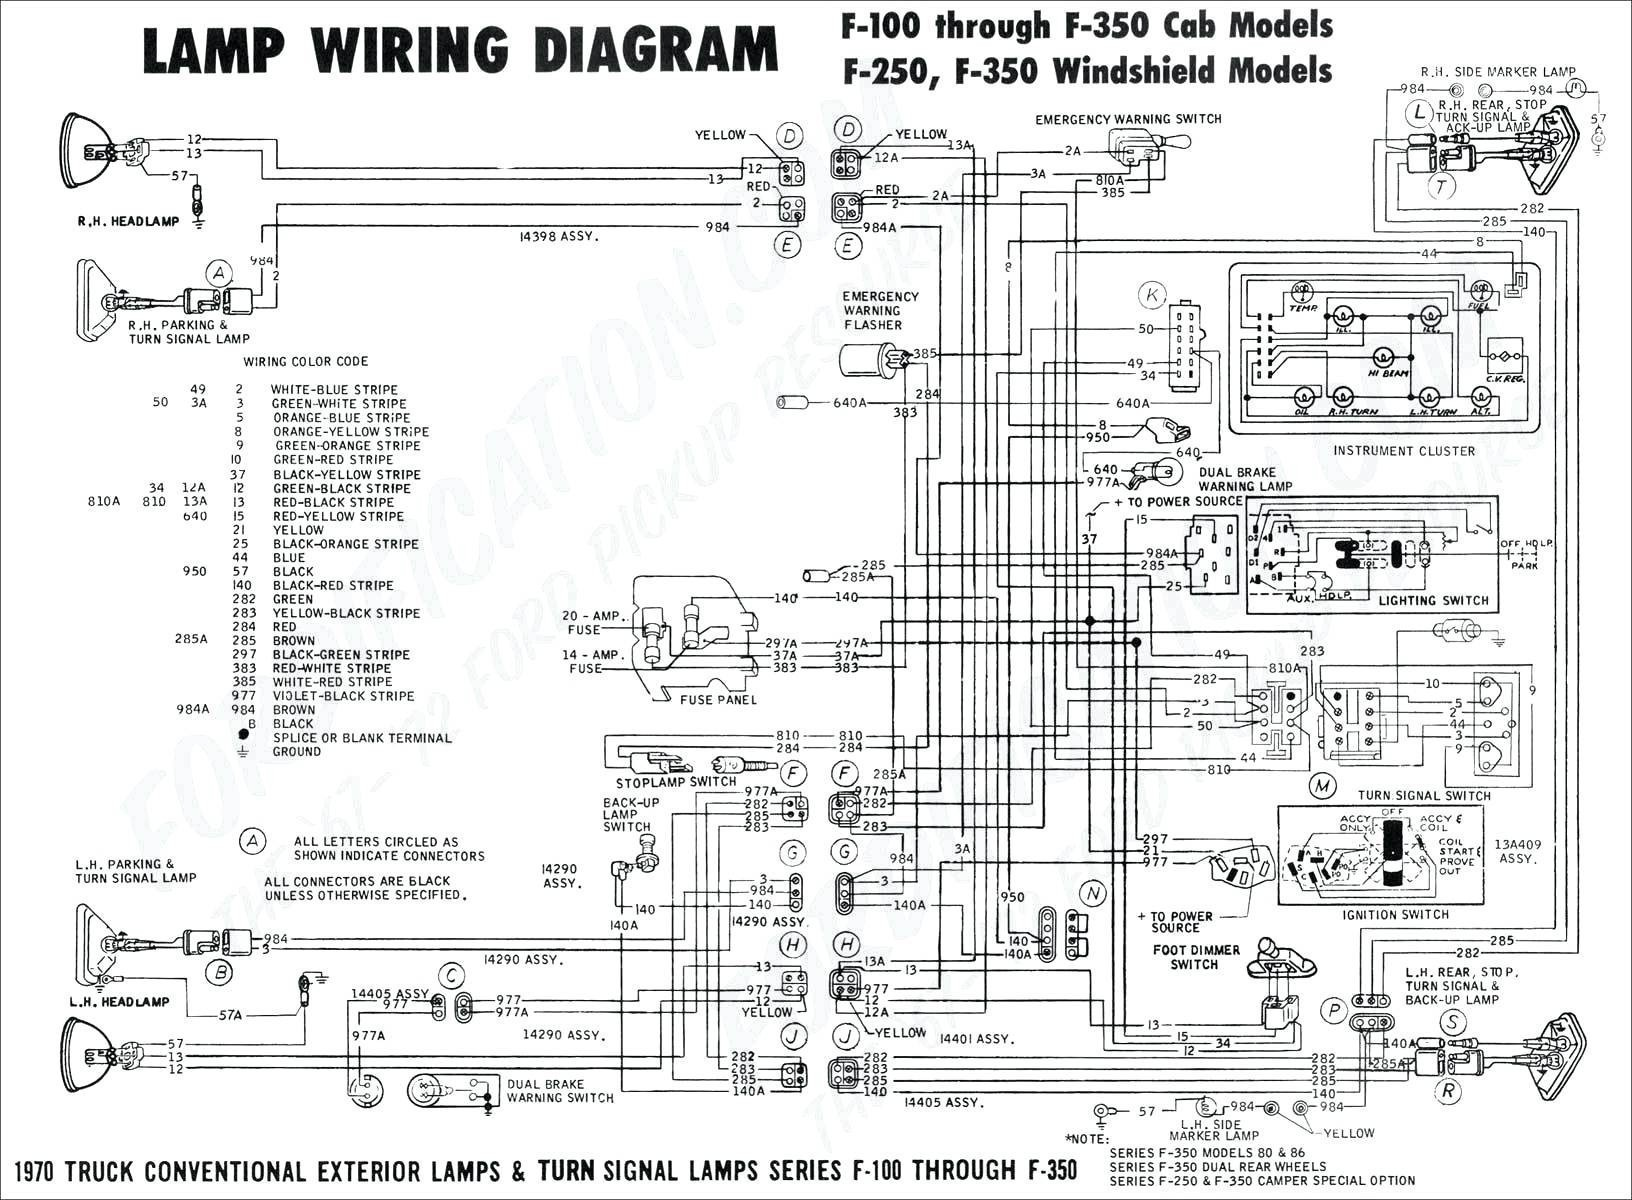 Chevy Truck Fuse Box Diagram Wiring Diagram for Home Fuse Box New 94 ford F53 Flasher Wiring Of Chevy Truck Fuse Box Diagram